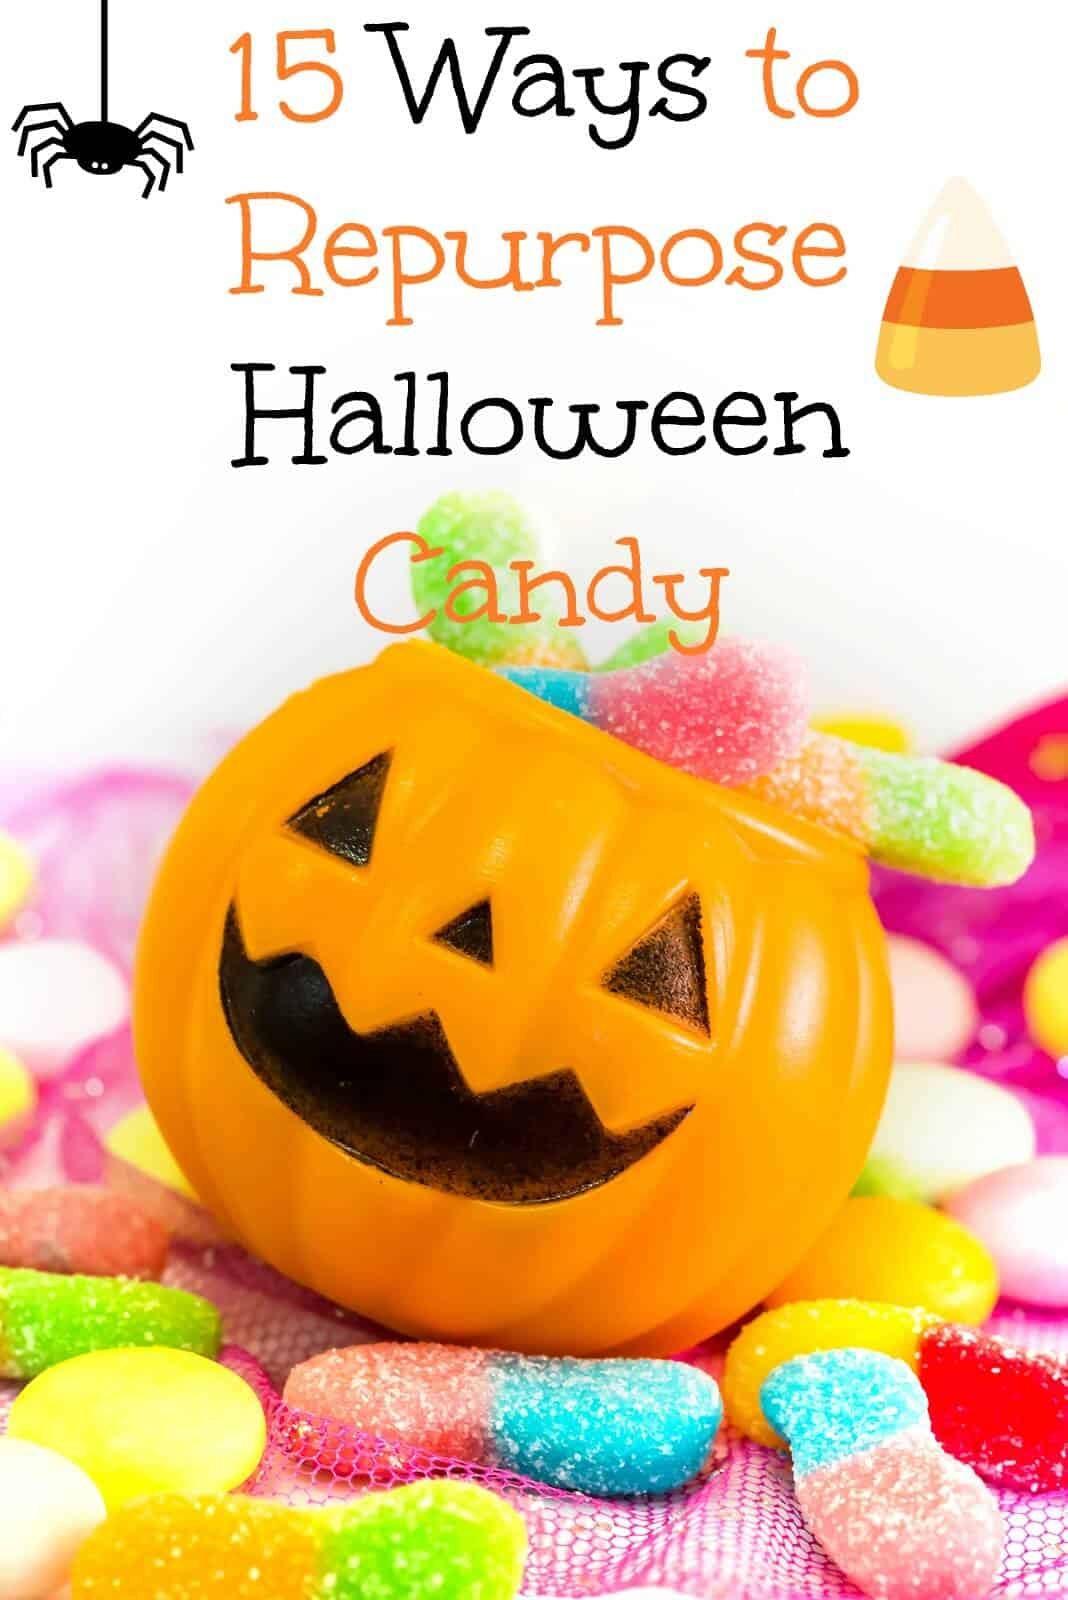 15 Ways to Repurpose Halloween Candy | Healthy Living in Body and Mind.